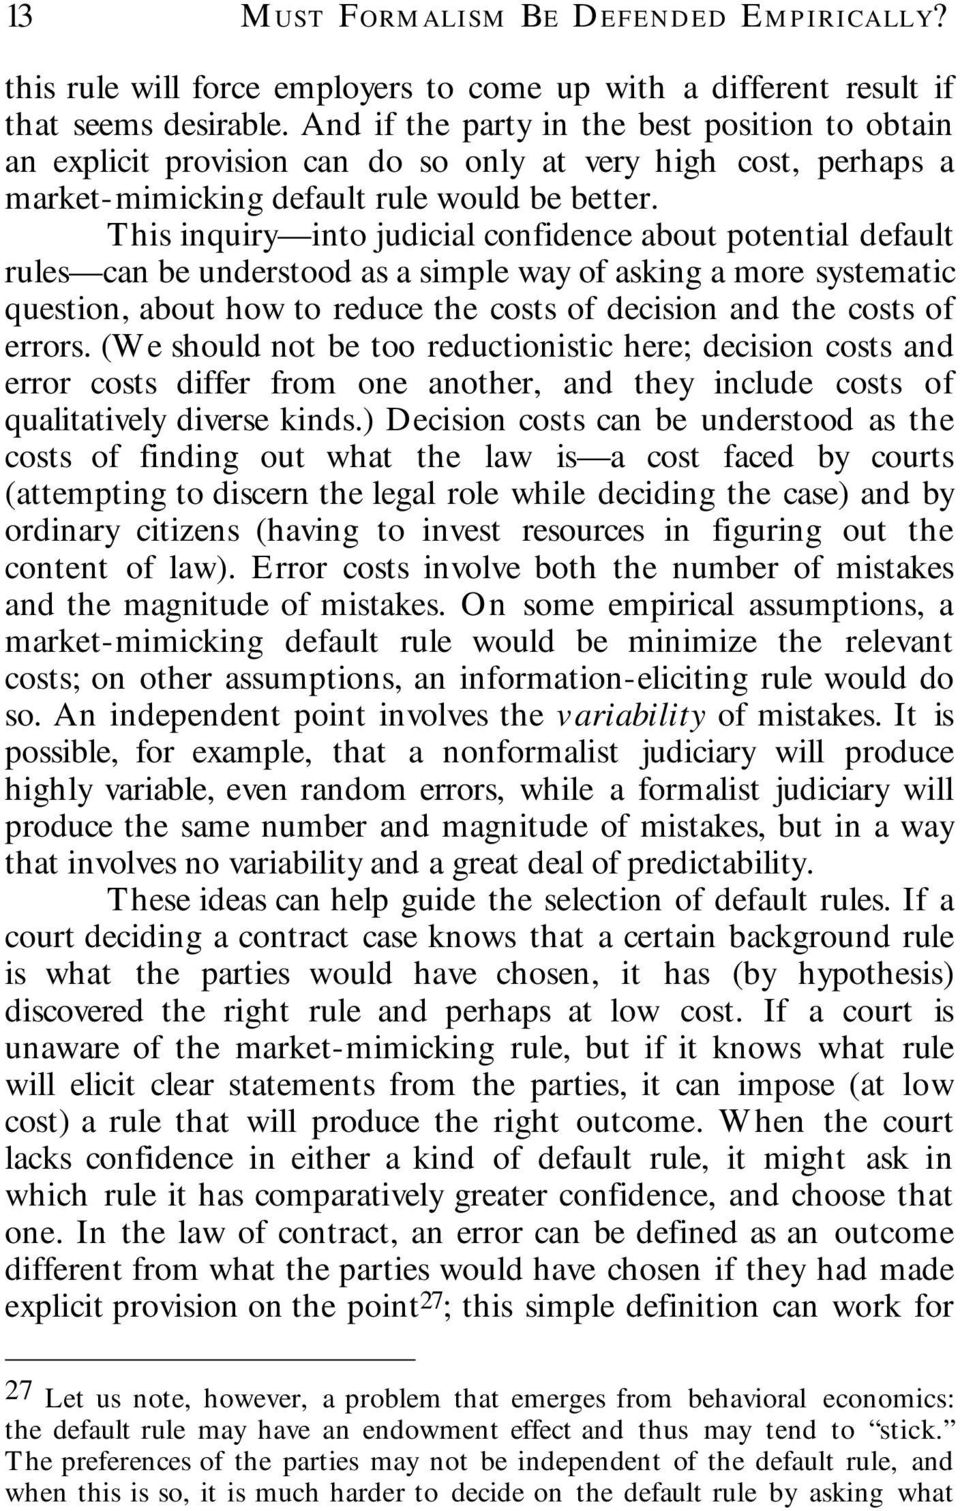 This inquiry into judicial confidence about potential default rules can be understood as a simple way of asking a more systematic question, about how to reduce the costs of decision and the costs of